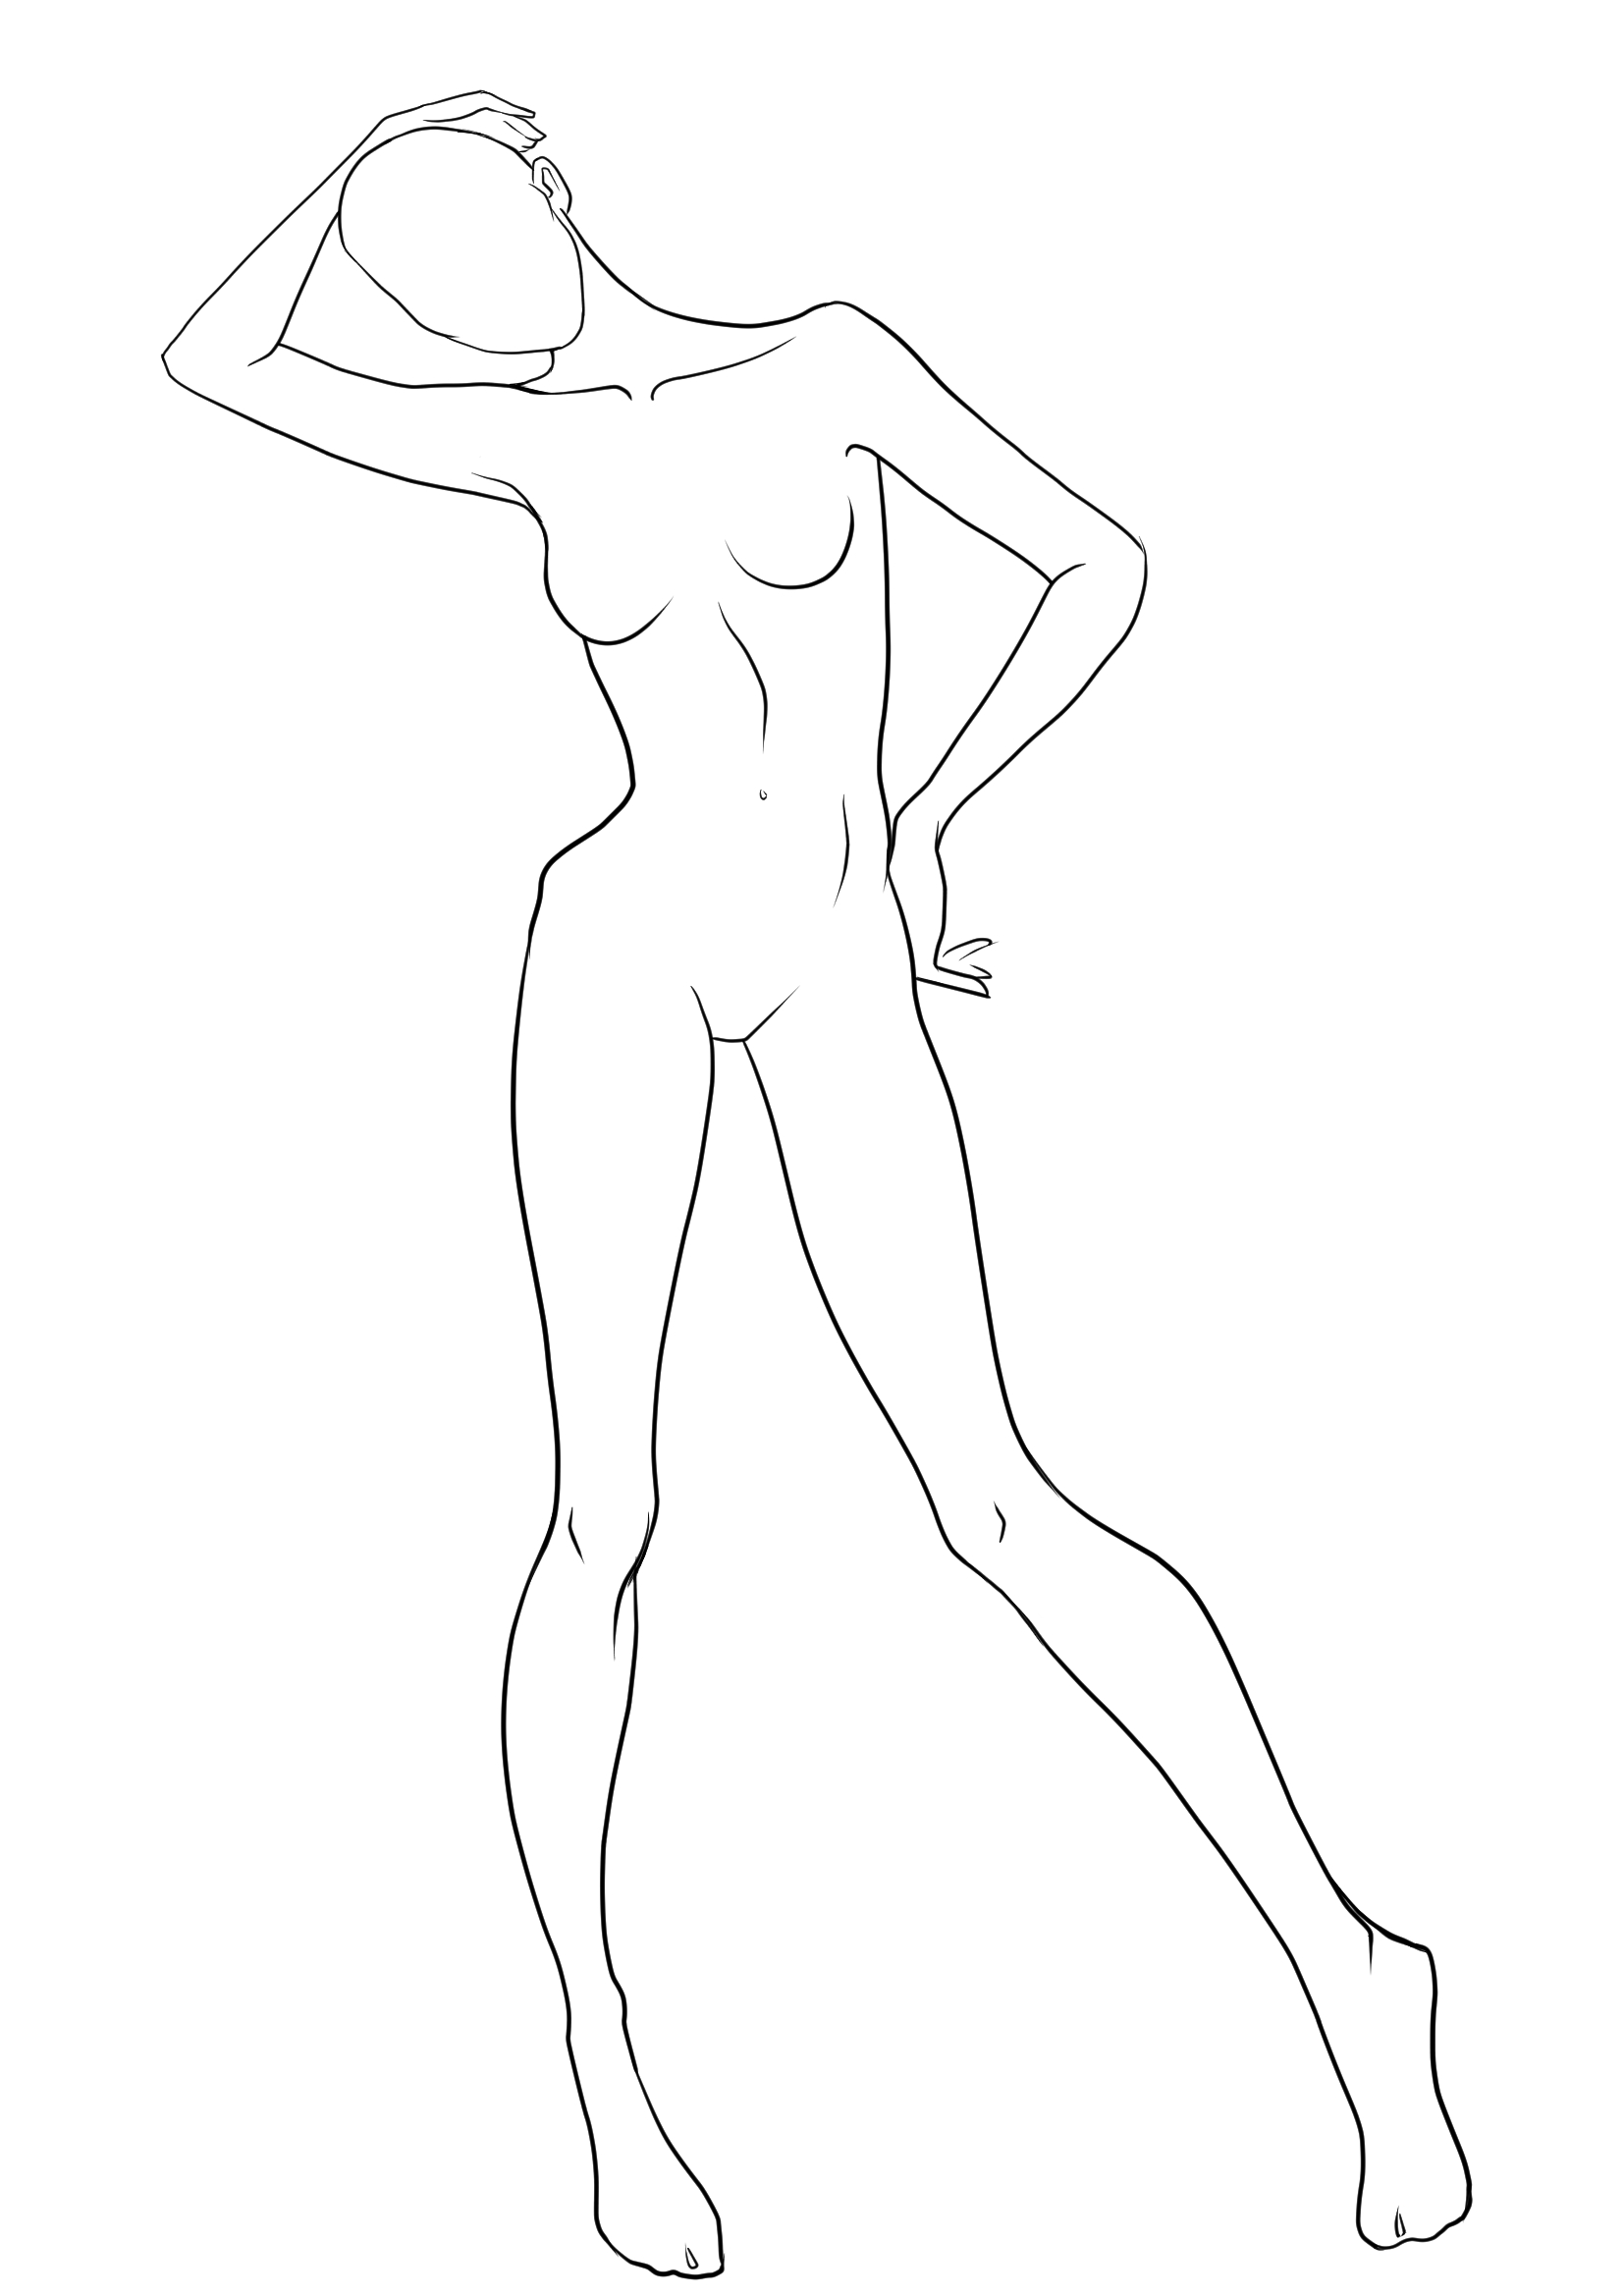 Body Drawing Outline At Getdrawings Free For Personal Use Body